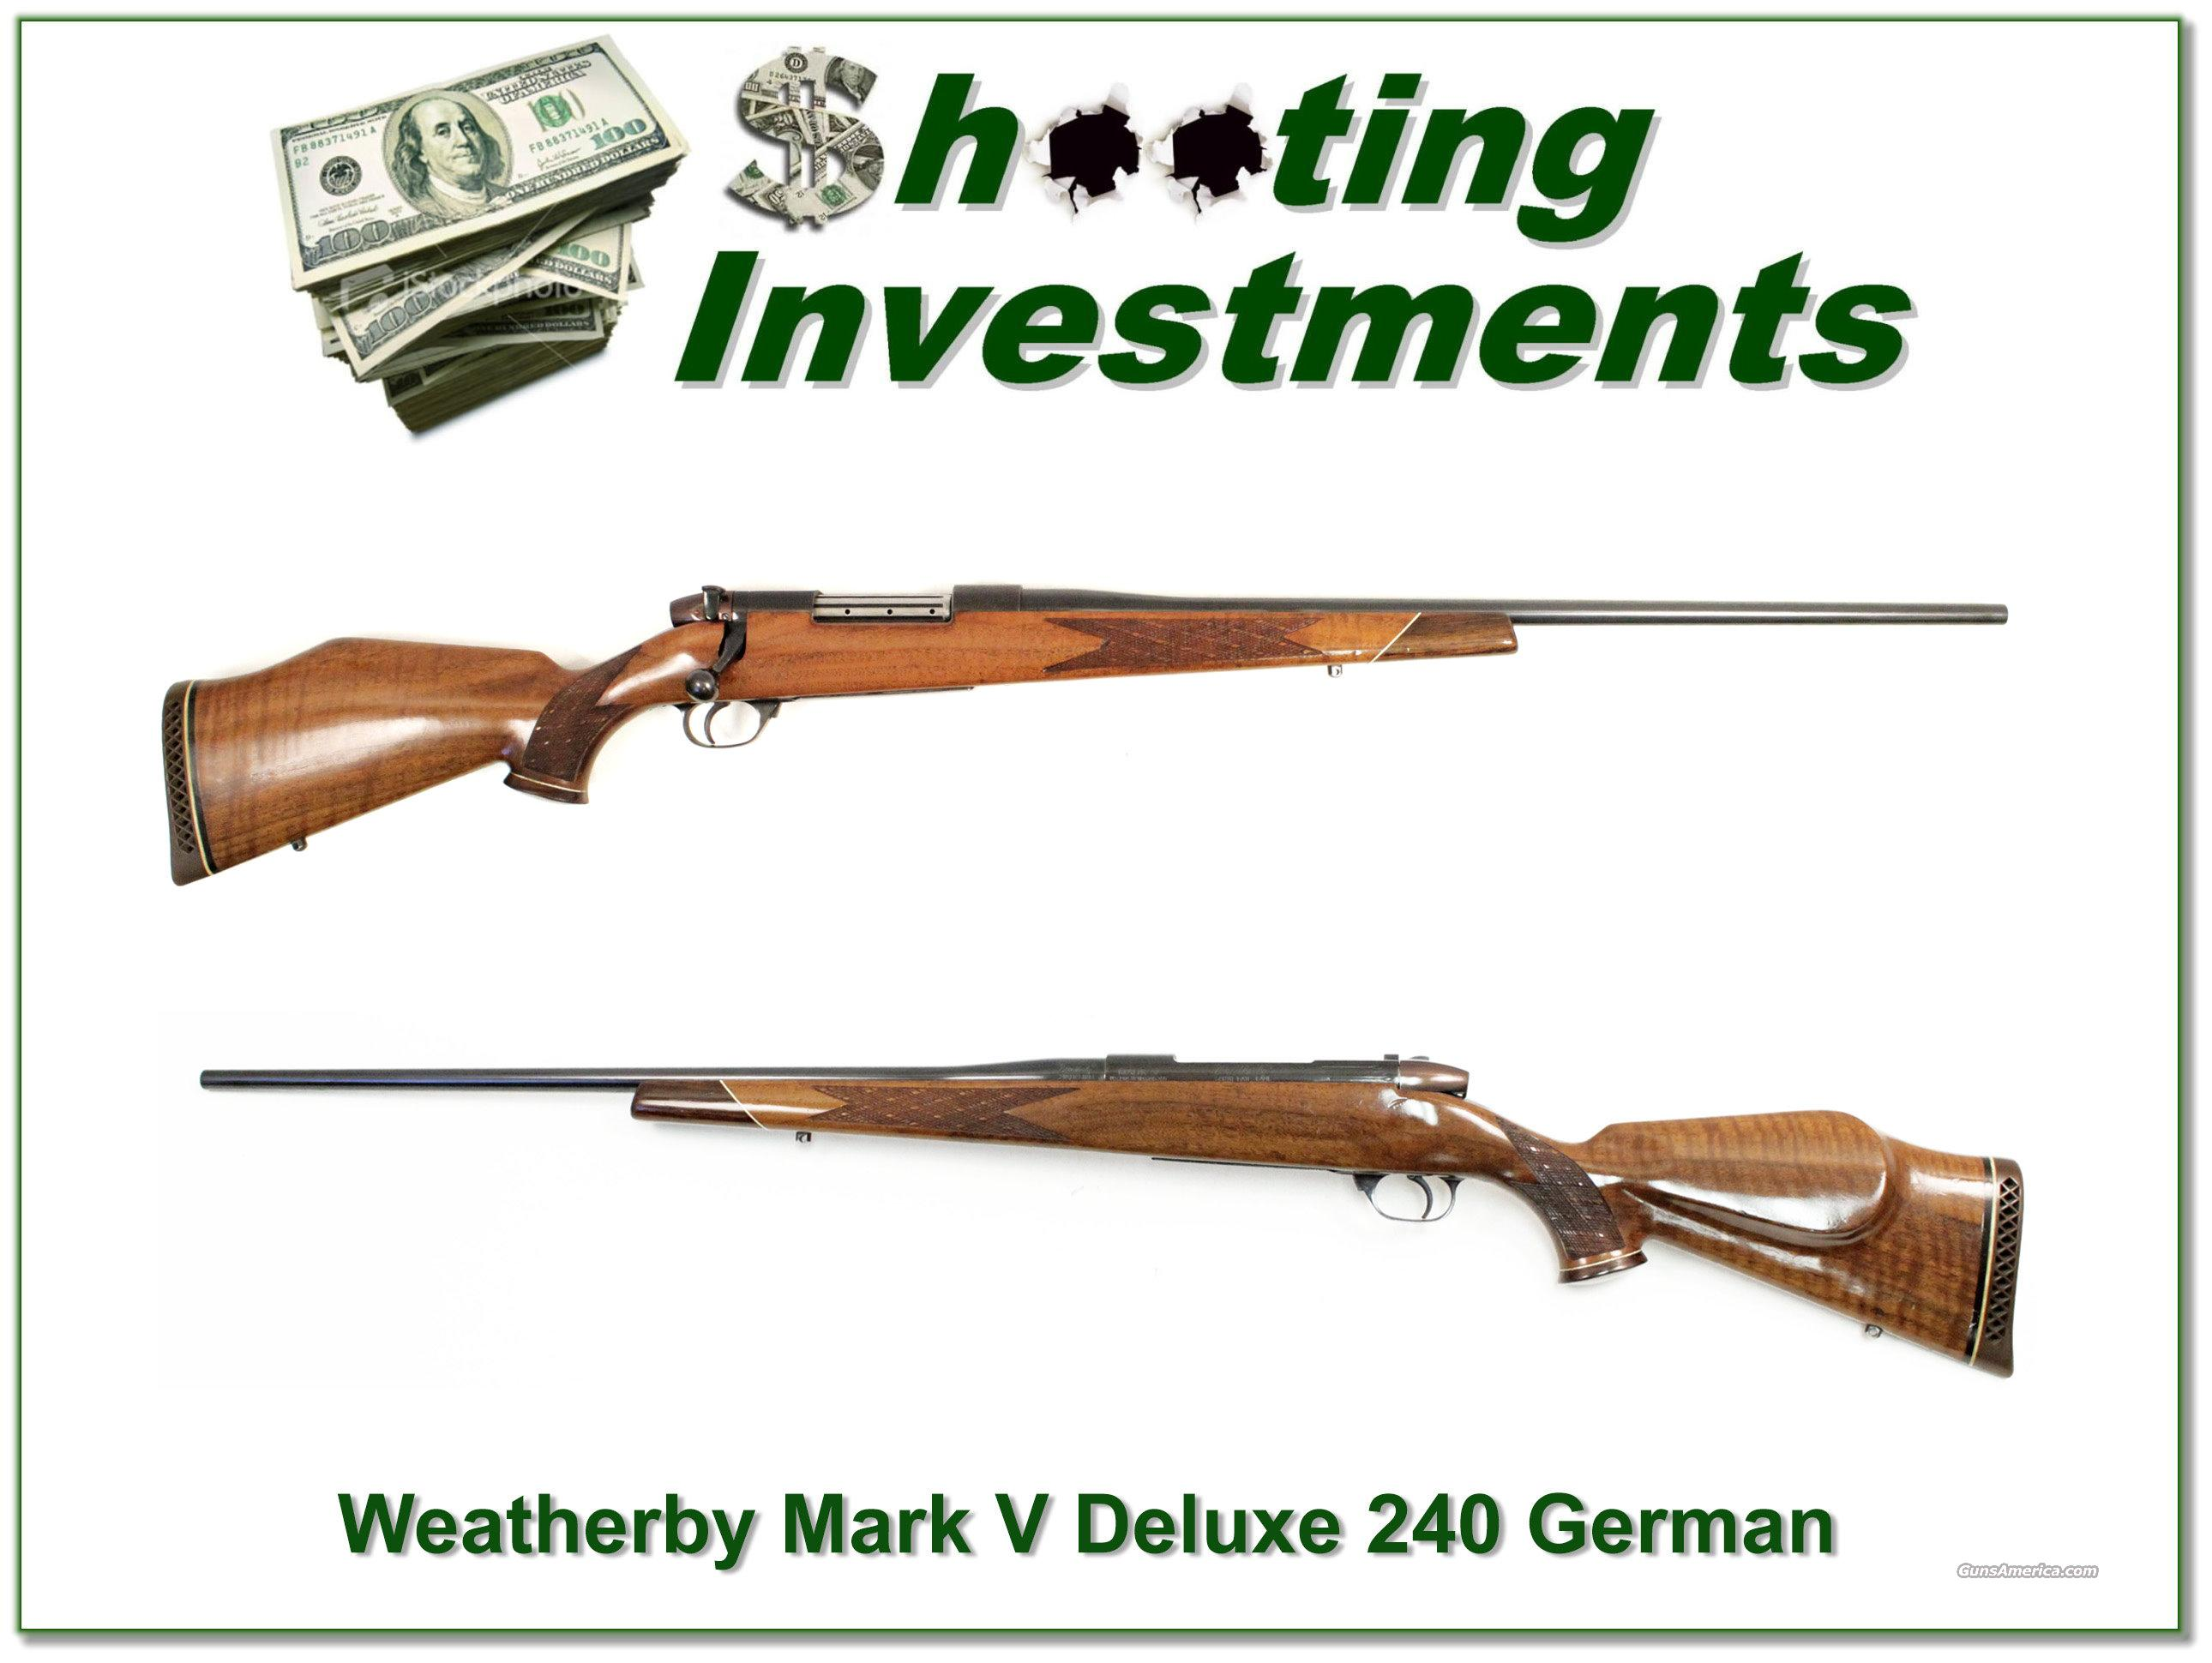 Weatherby Mark V Deluxe German 240 Wthy Mag!  Guns > Rifles > Weatherby Rifles > Sporting